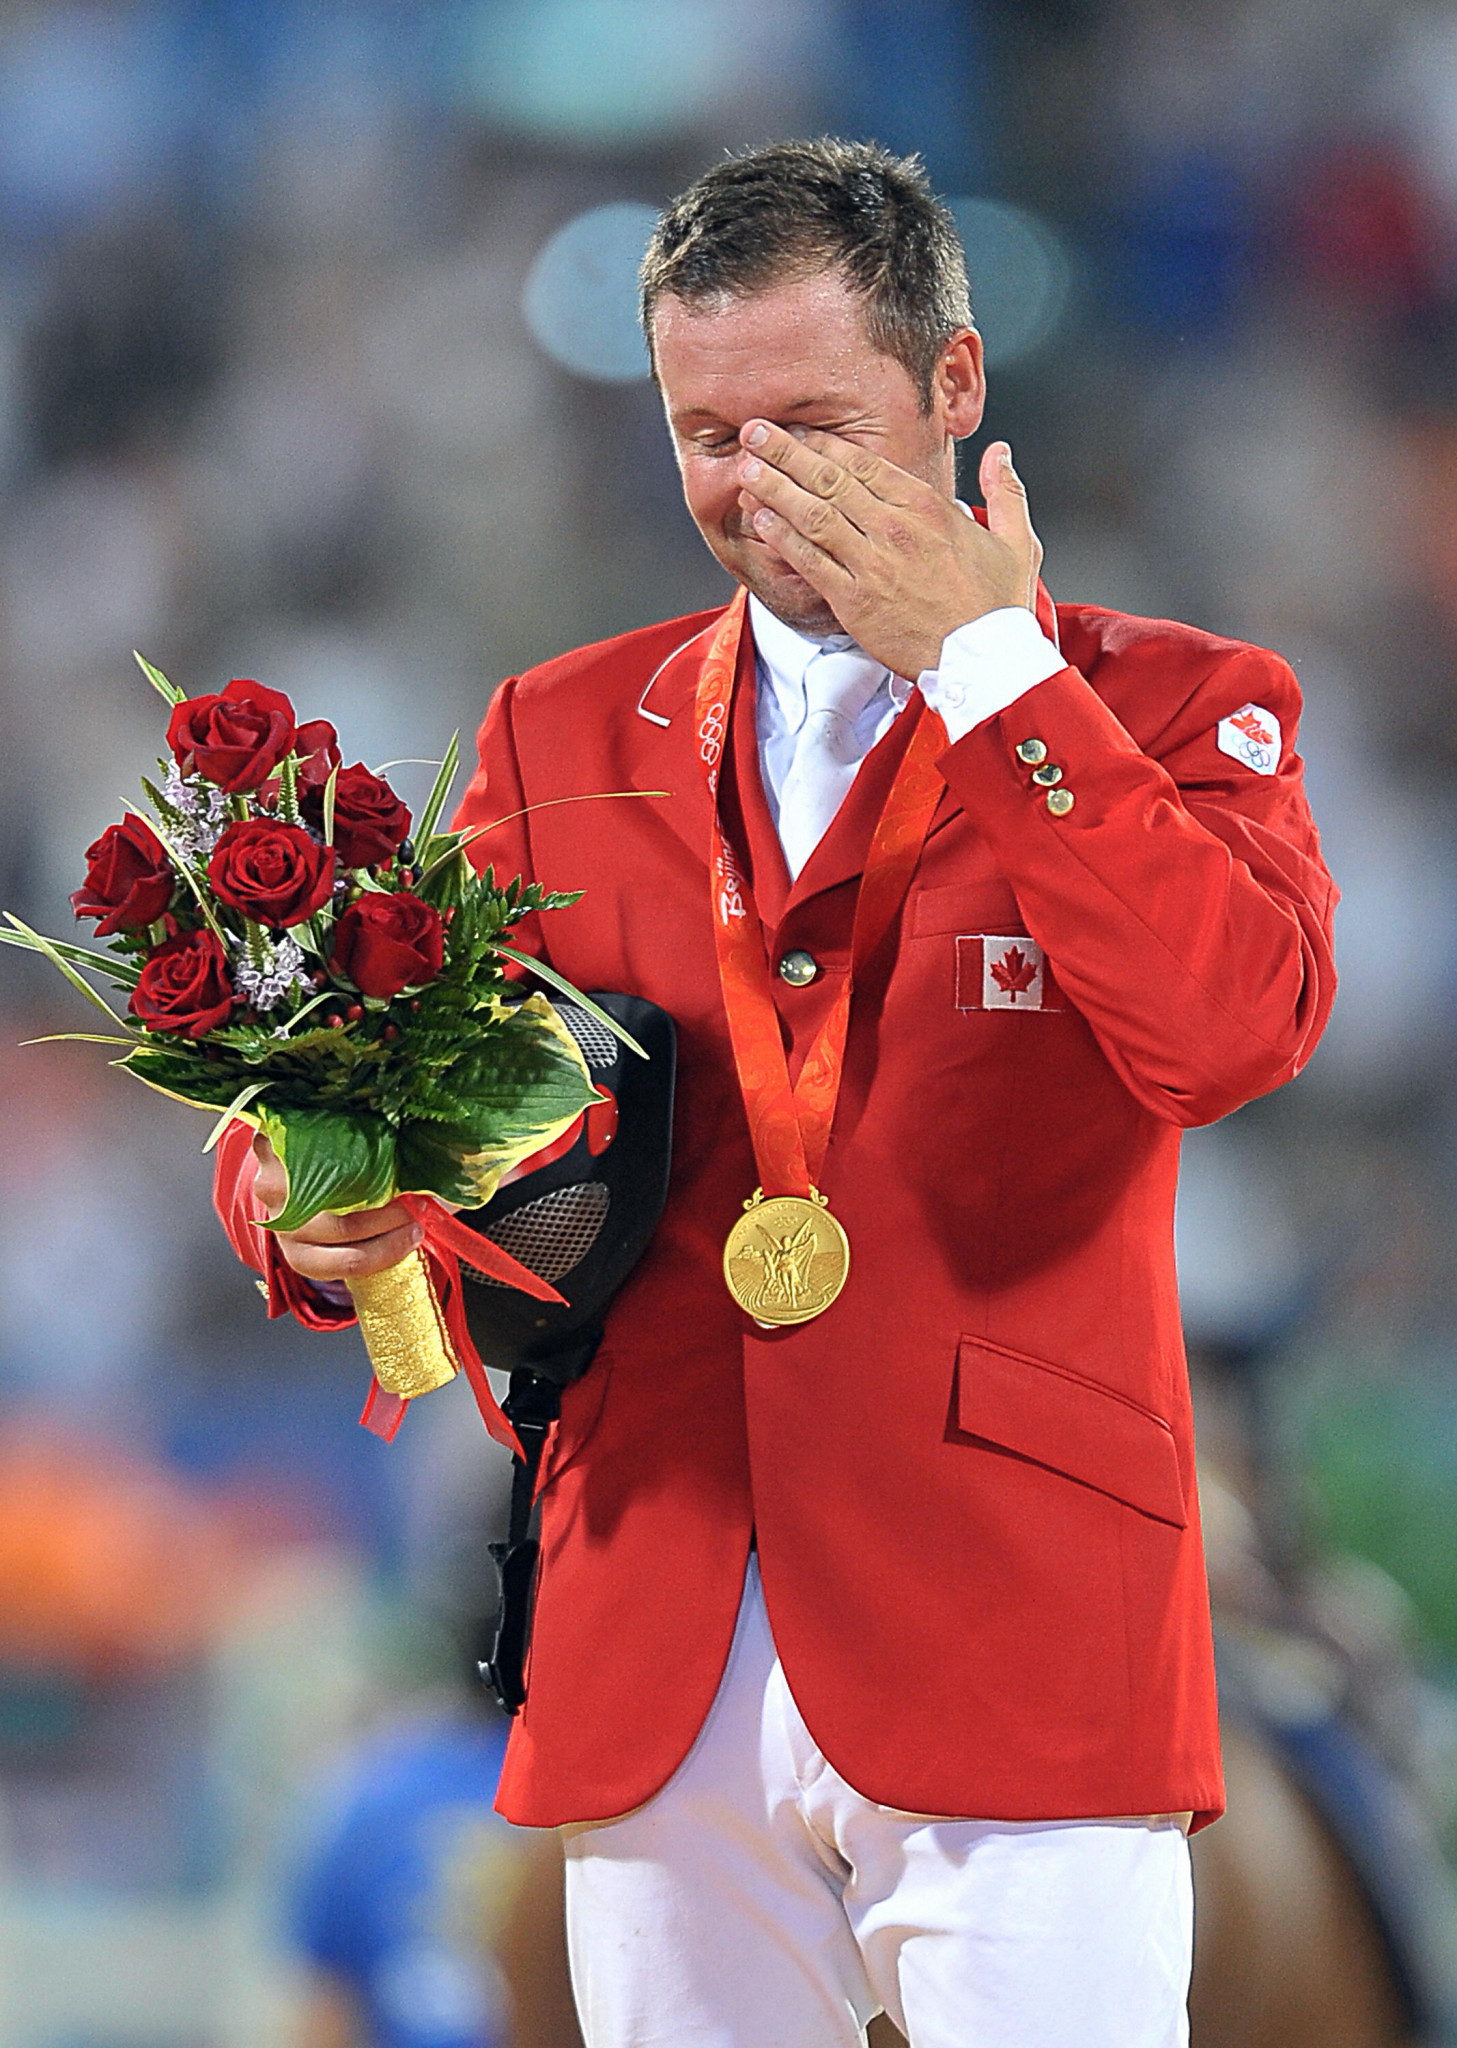 Eric Lamaze won individual Olympic gold at Beijing 2008 ©Getty Images